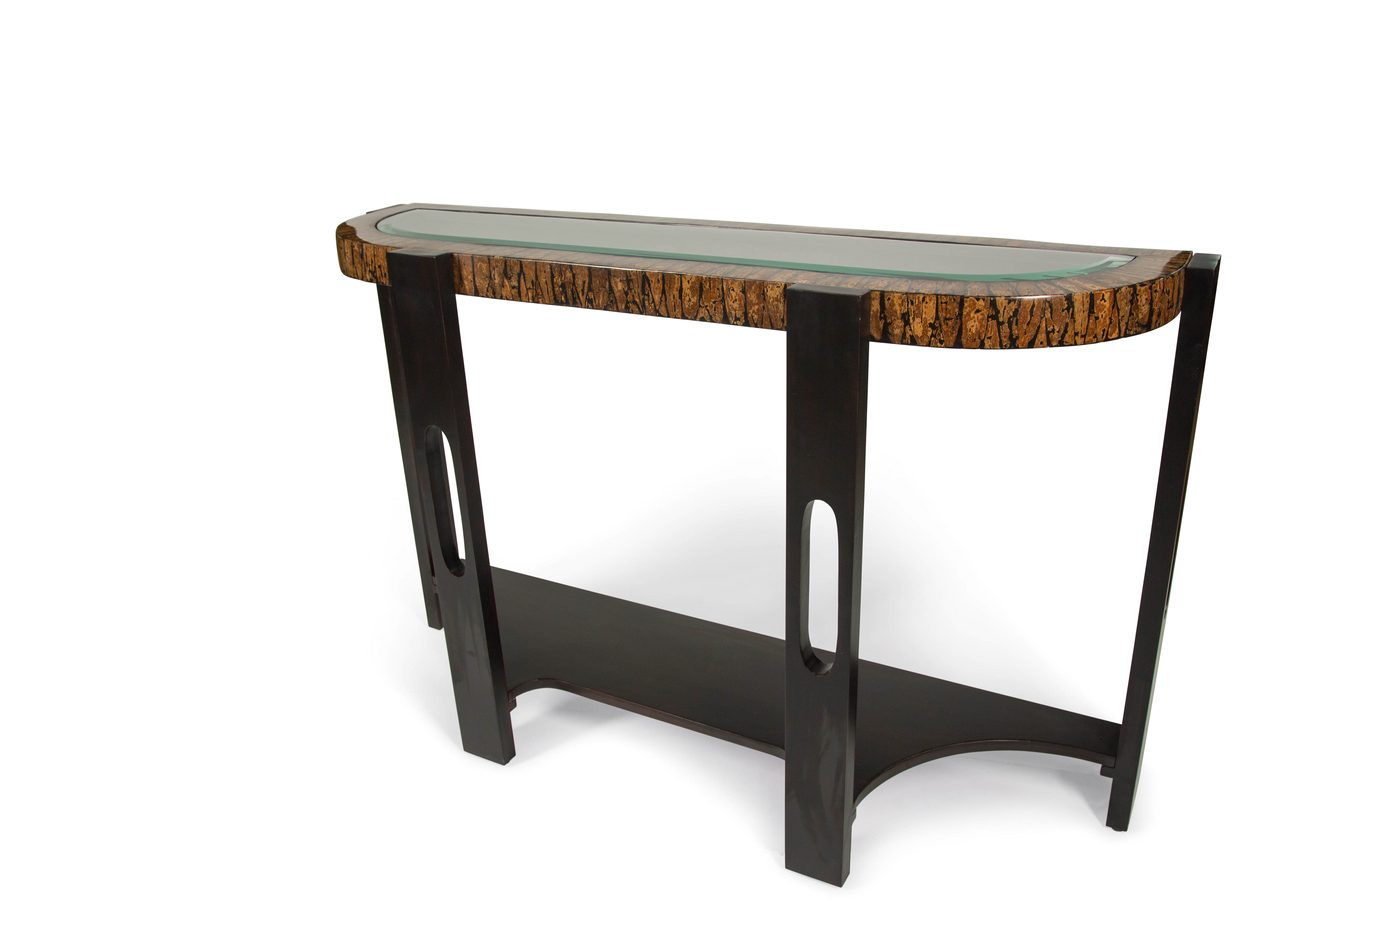 Montecristo Transitional Curved Sofa Table With Stone And